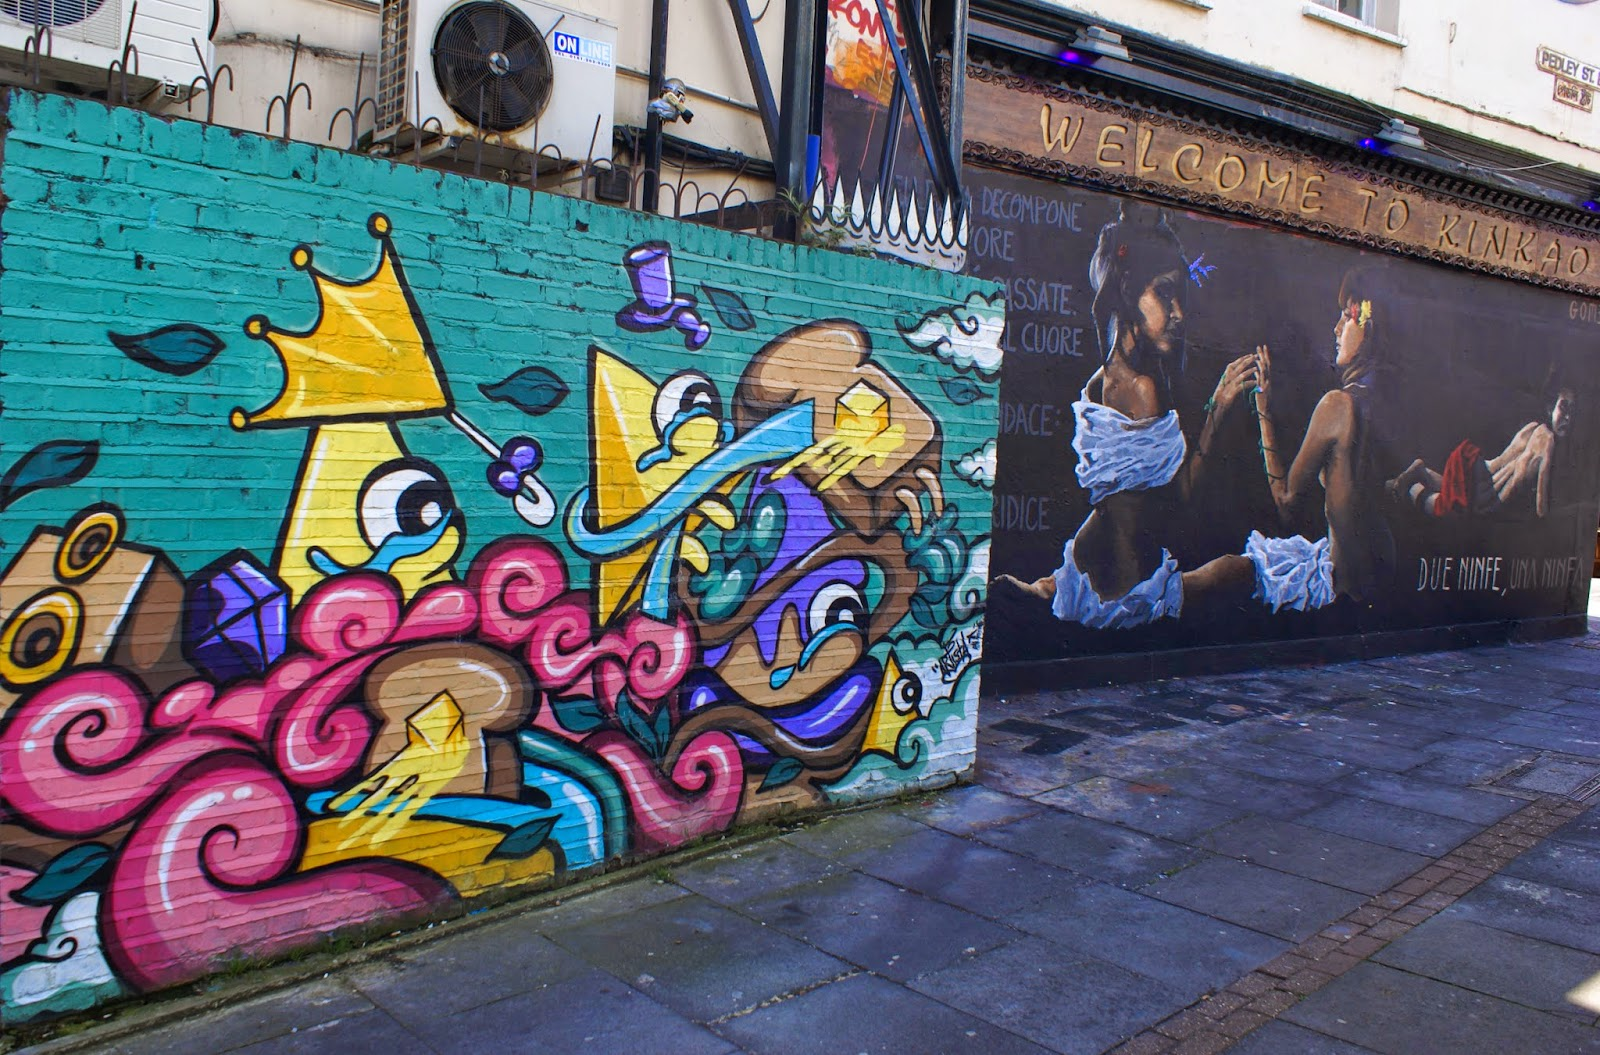 street art brick lane london spitalfields united kingdom uk europe